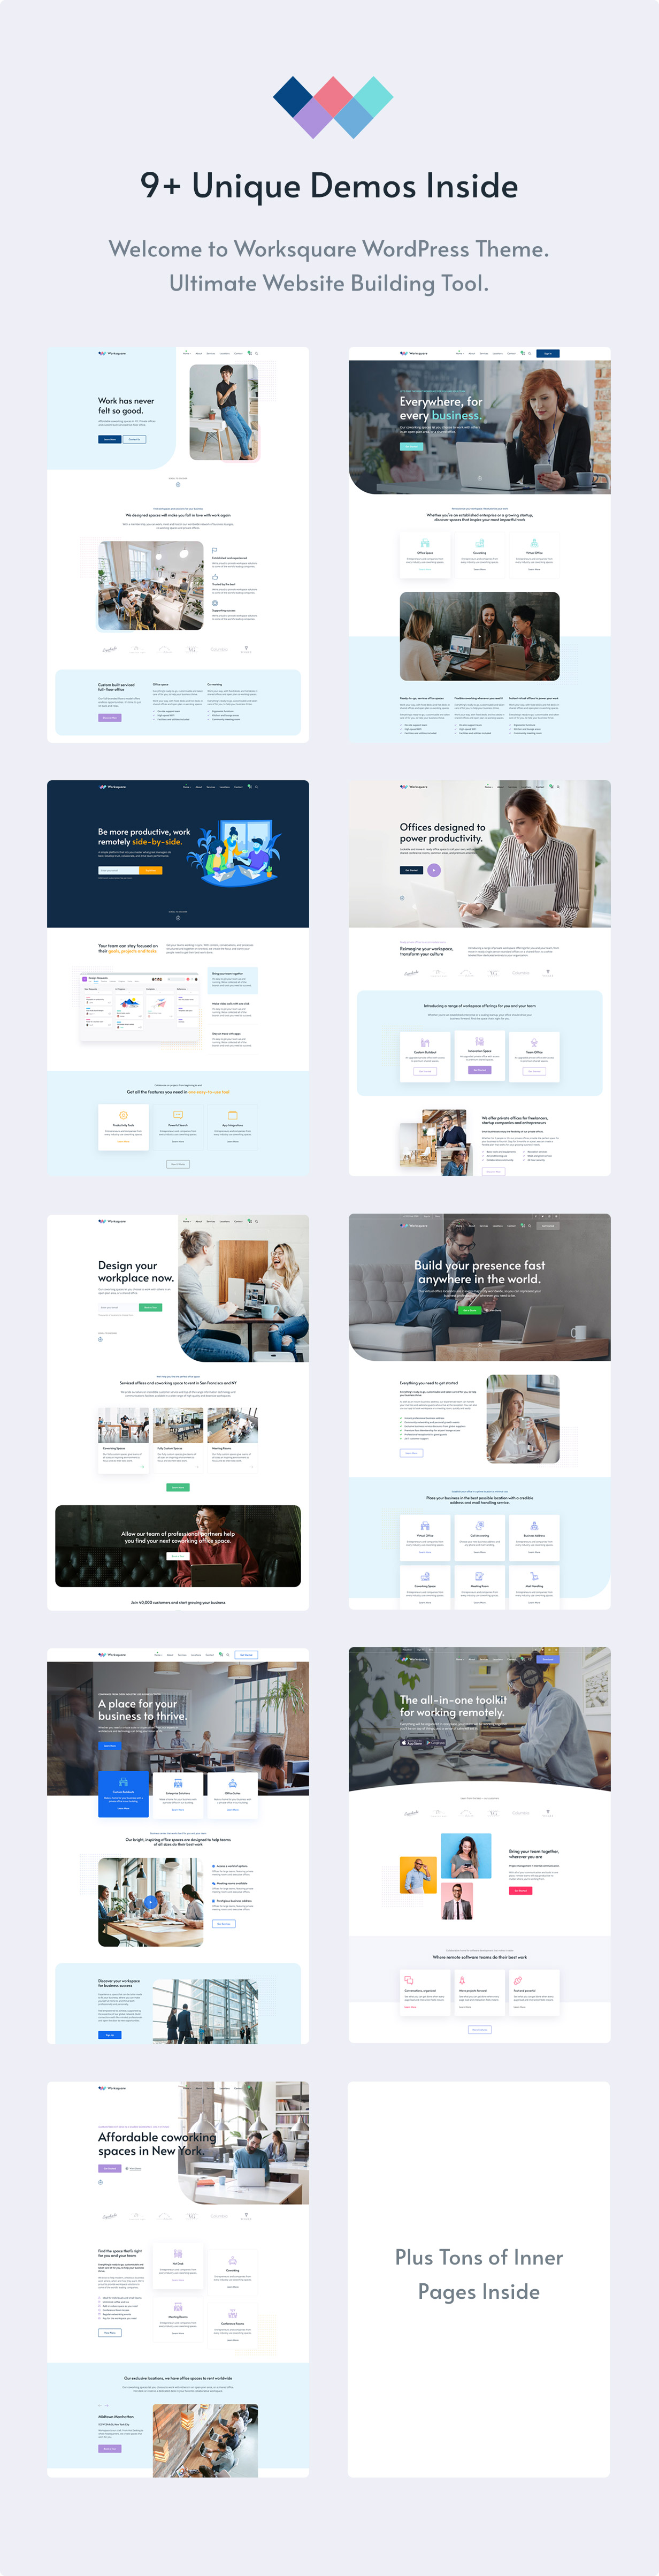 Worksquare - Coworking and Office Space WordPress Theme - 4